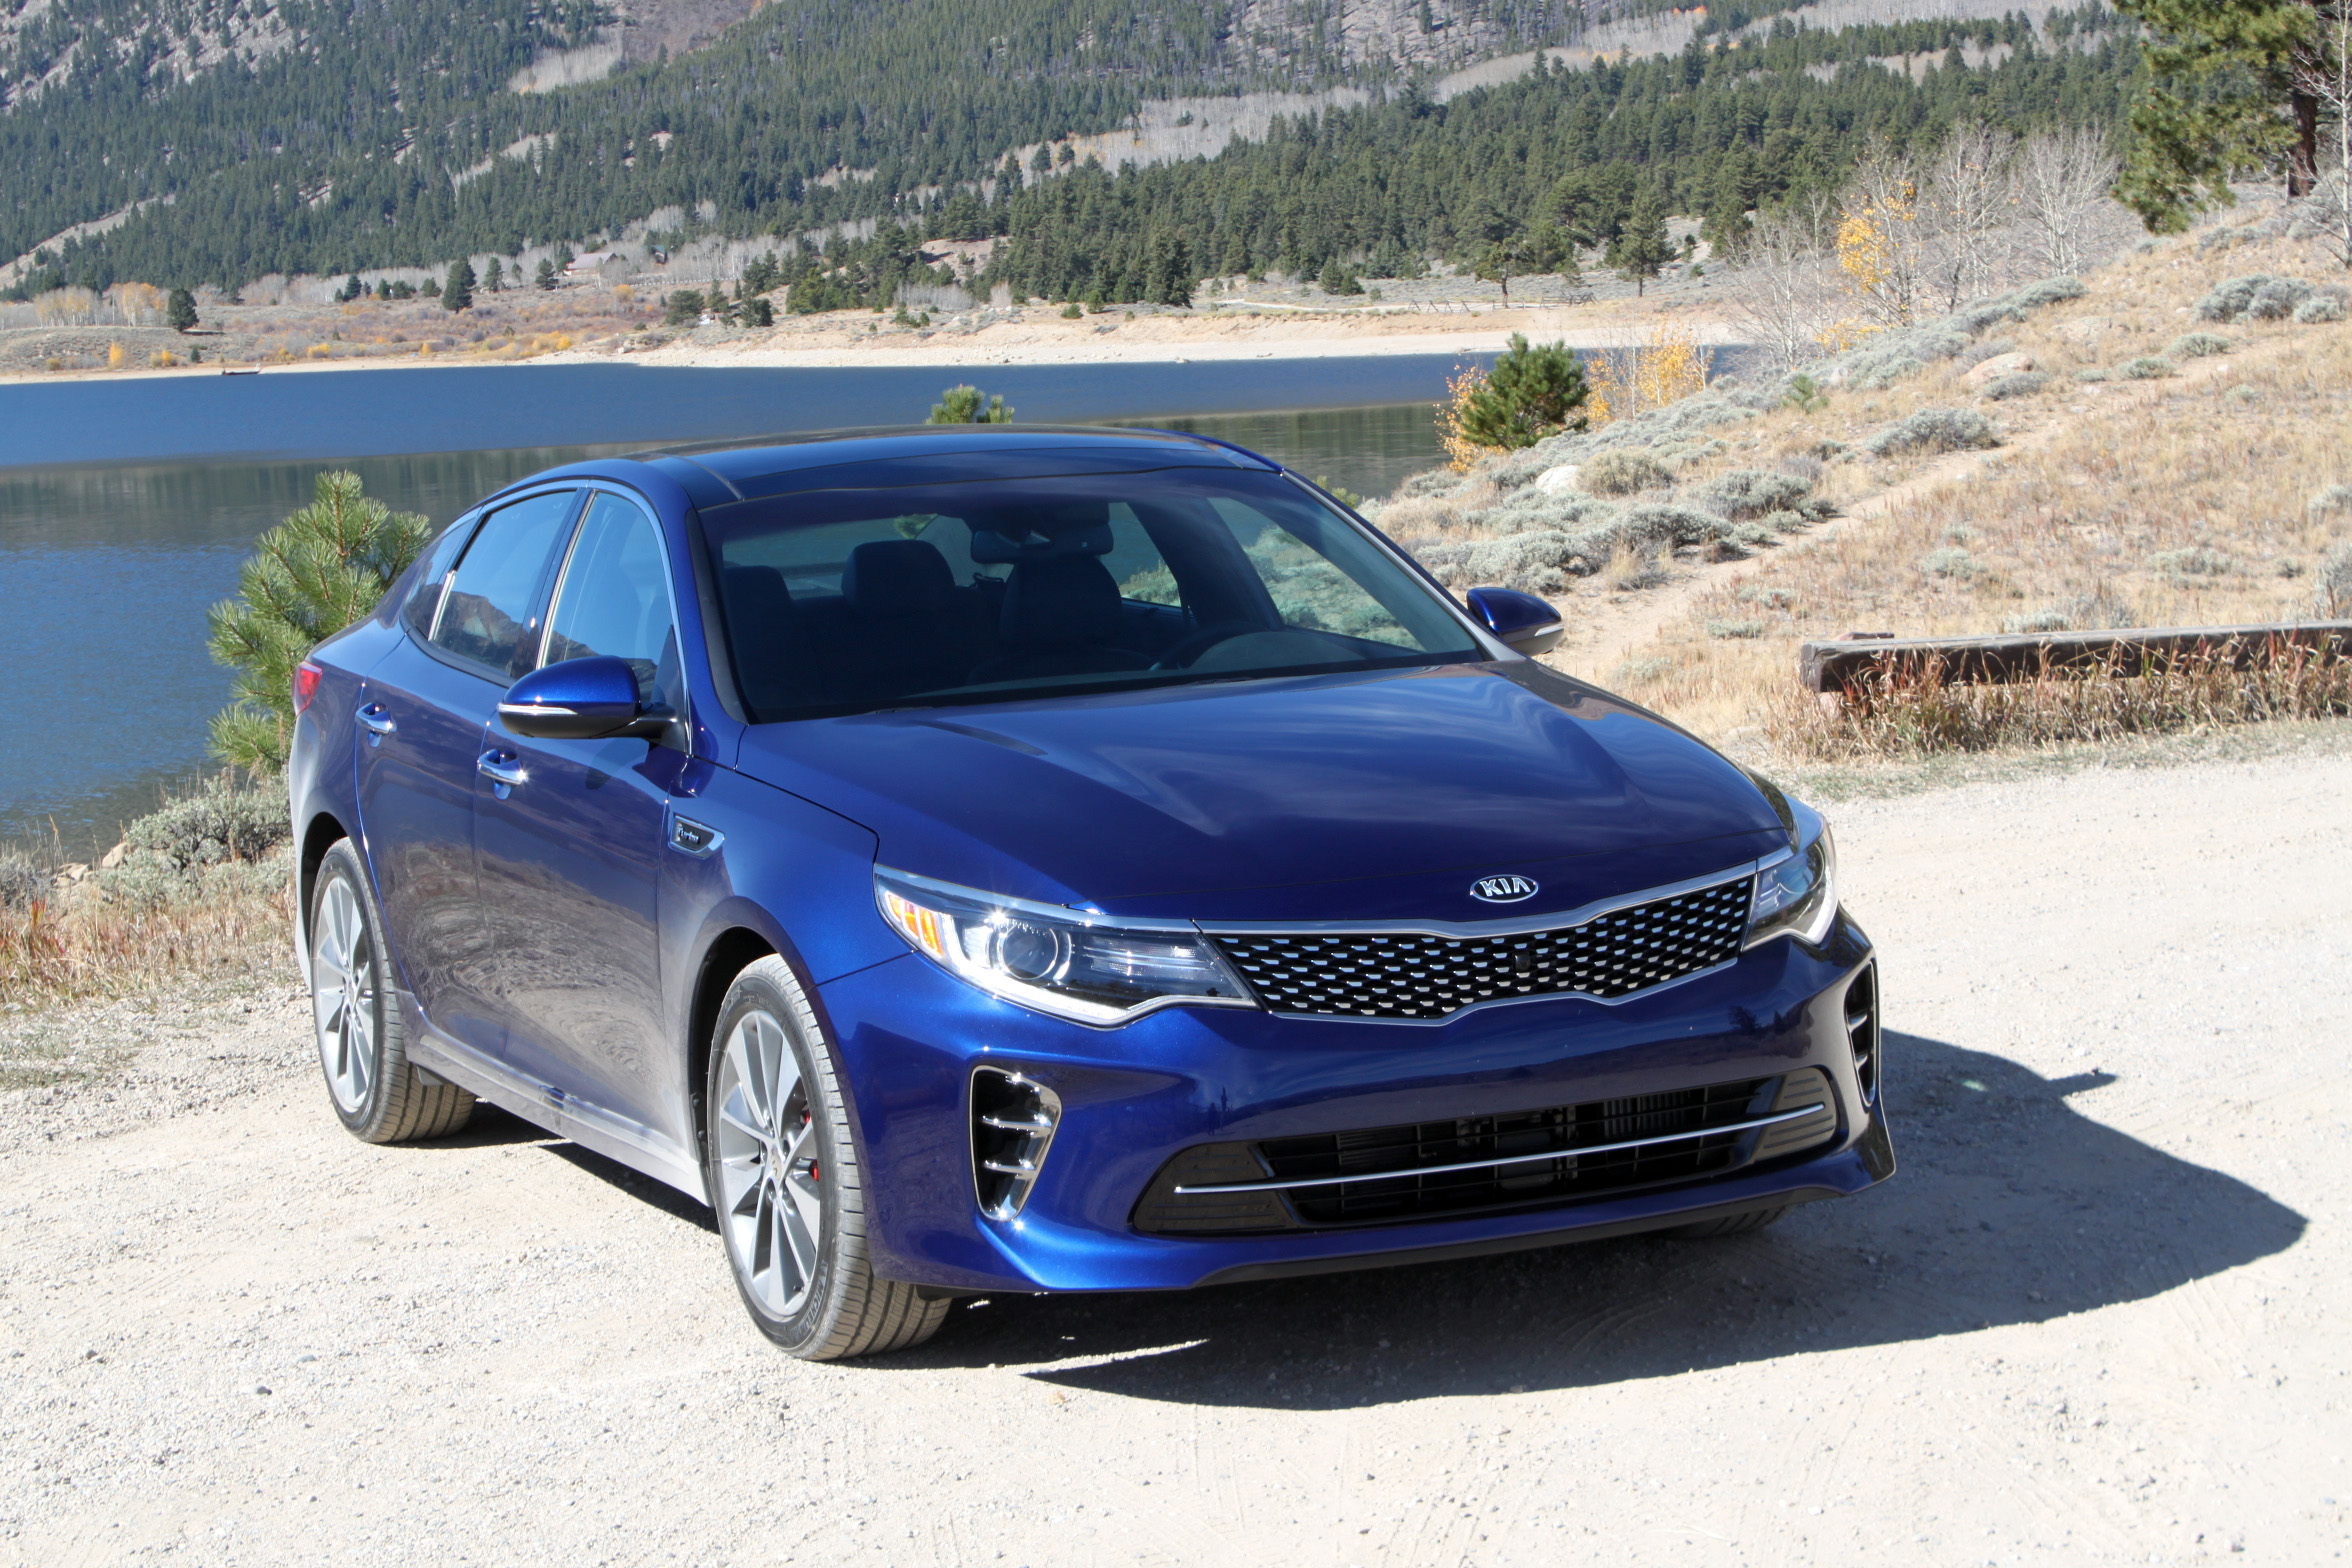 Used Car Loan >> 2016 Kia Optima Review - AutoGuide.com